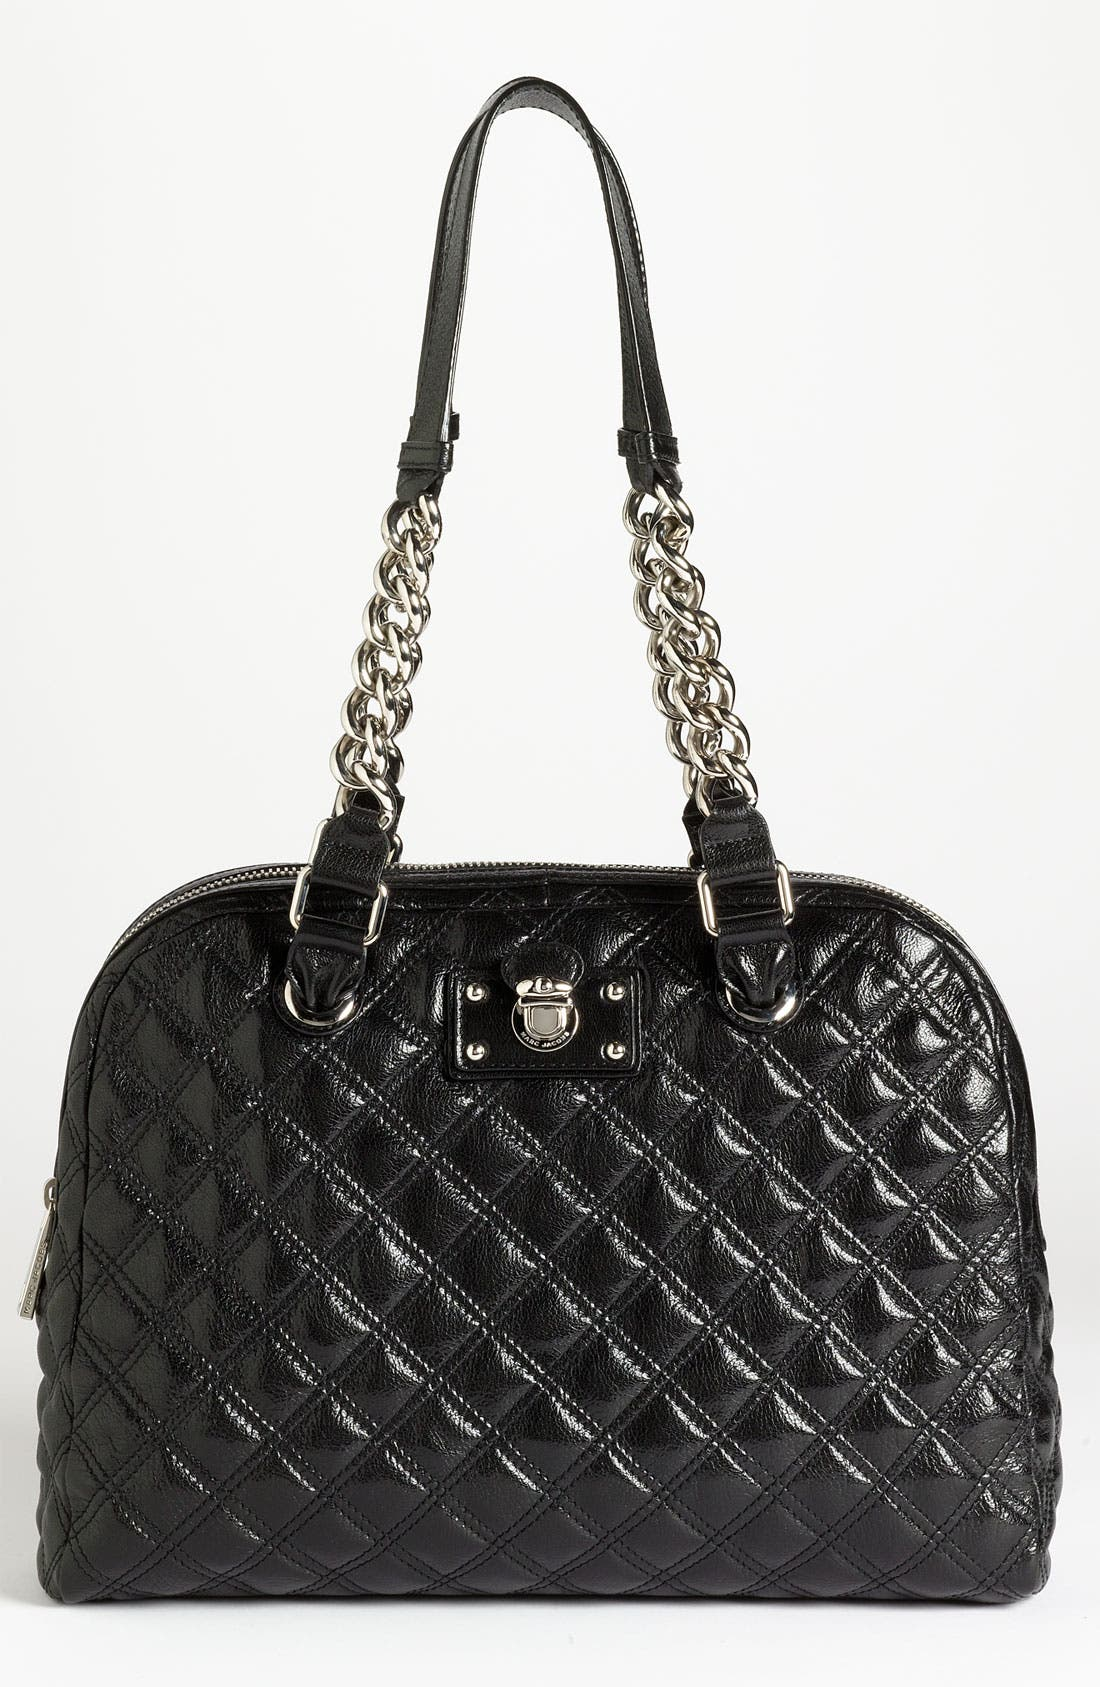 Main Image - MARC JACOBS 'Karlie' Leather Shoulder Bag